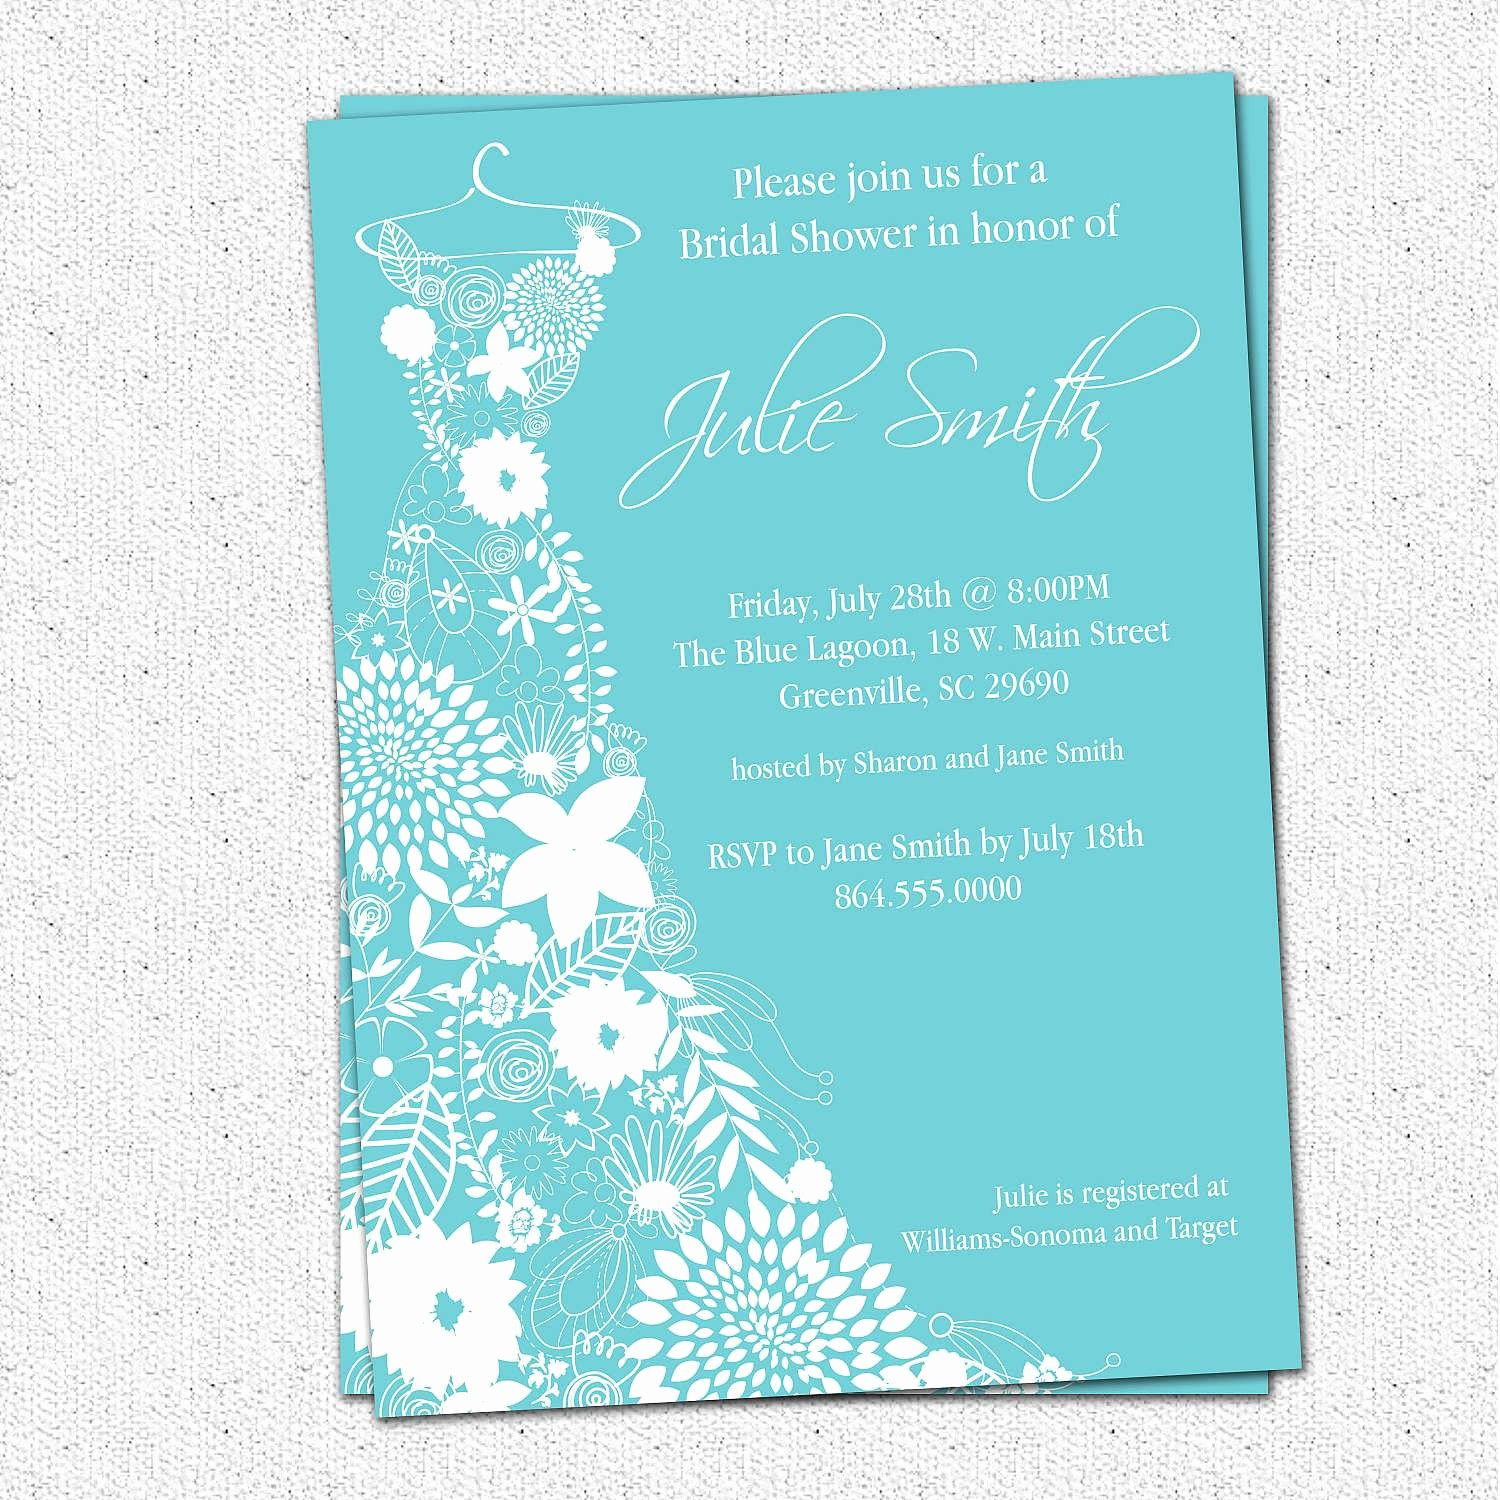 Wedding Invitations Templates Microsoft Word Best Of Bridal Shower Invitation Templates Microsoft Word